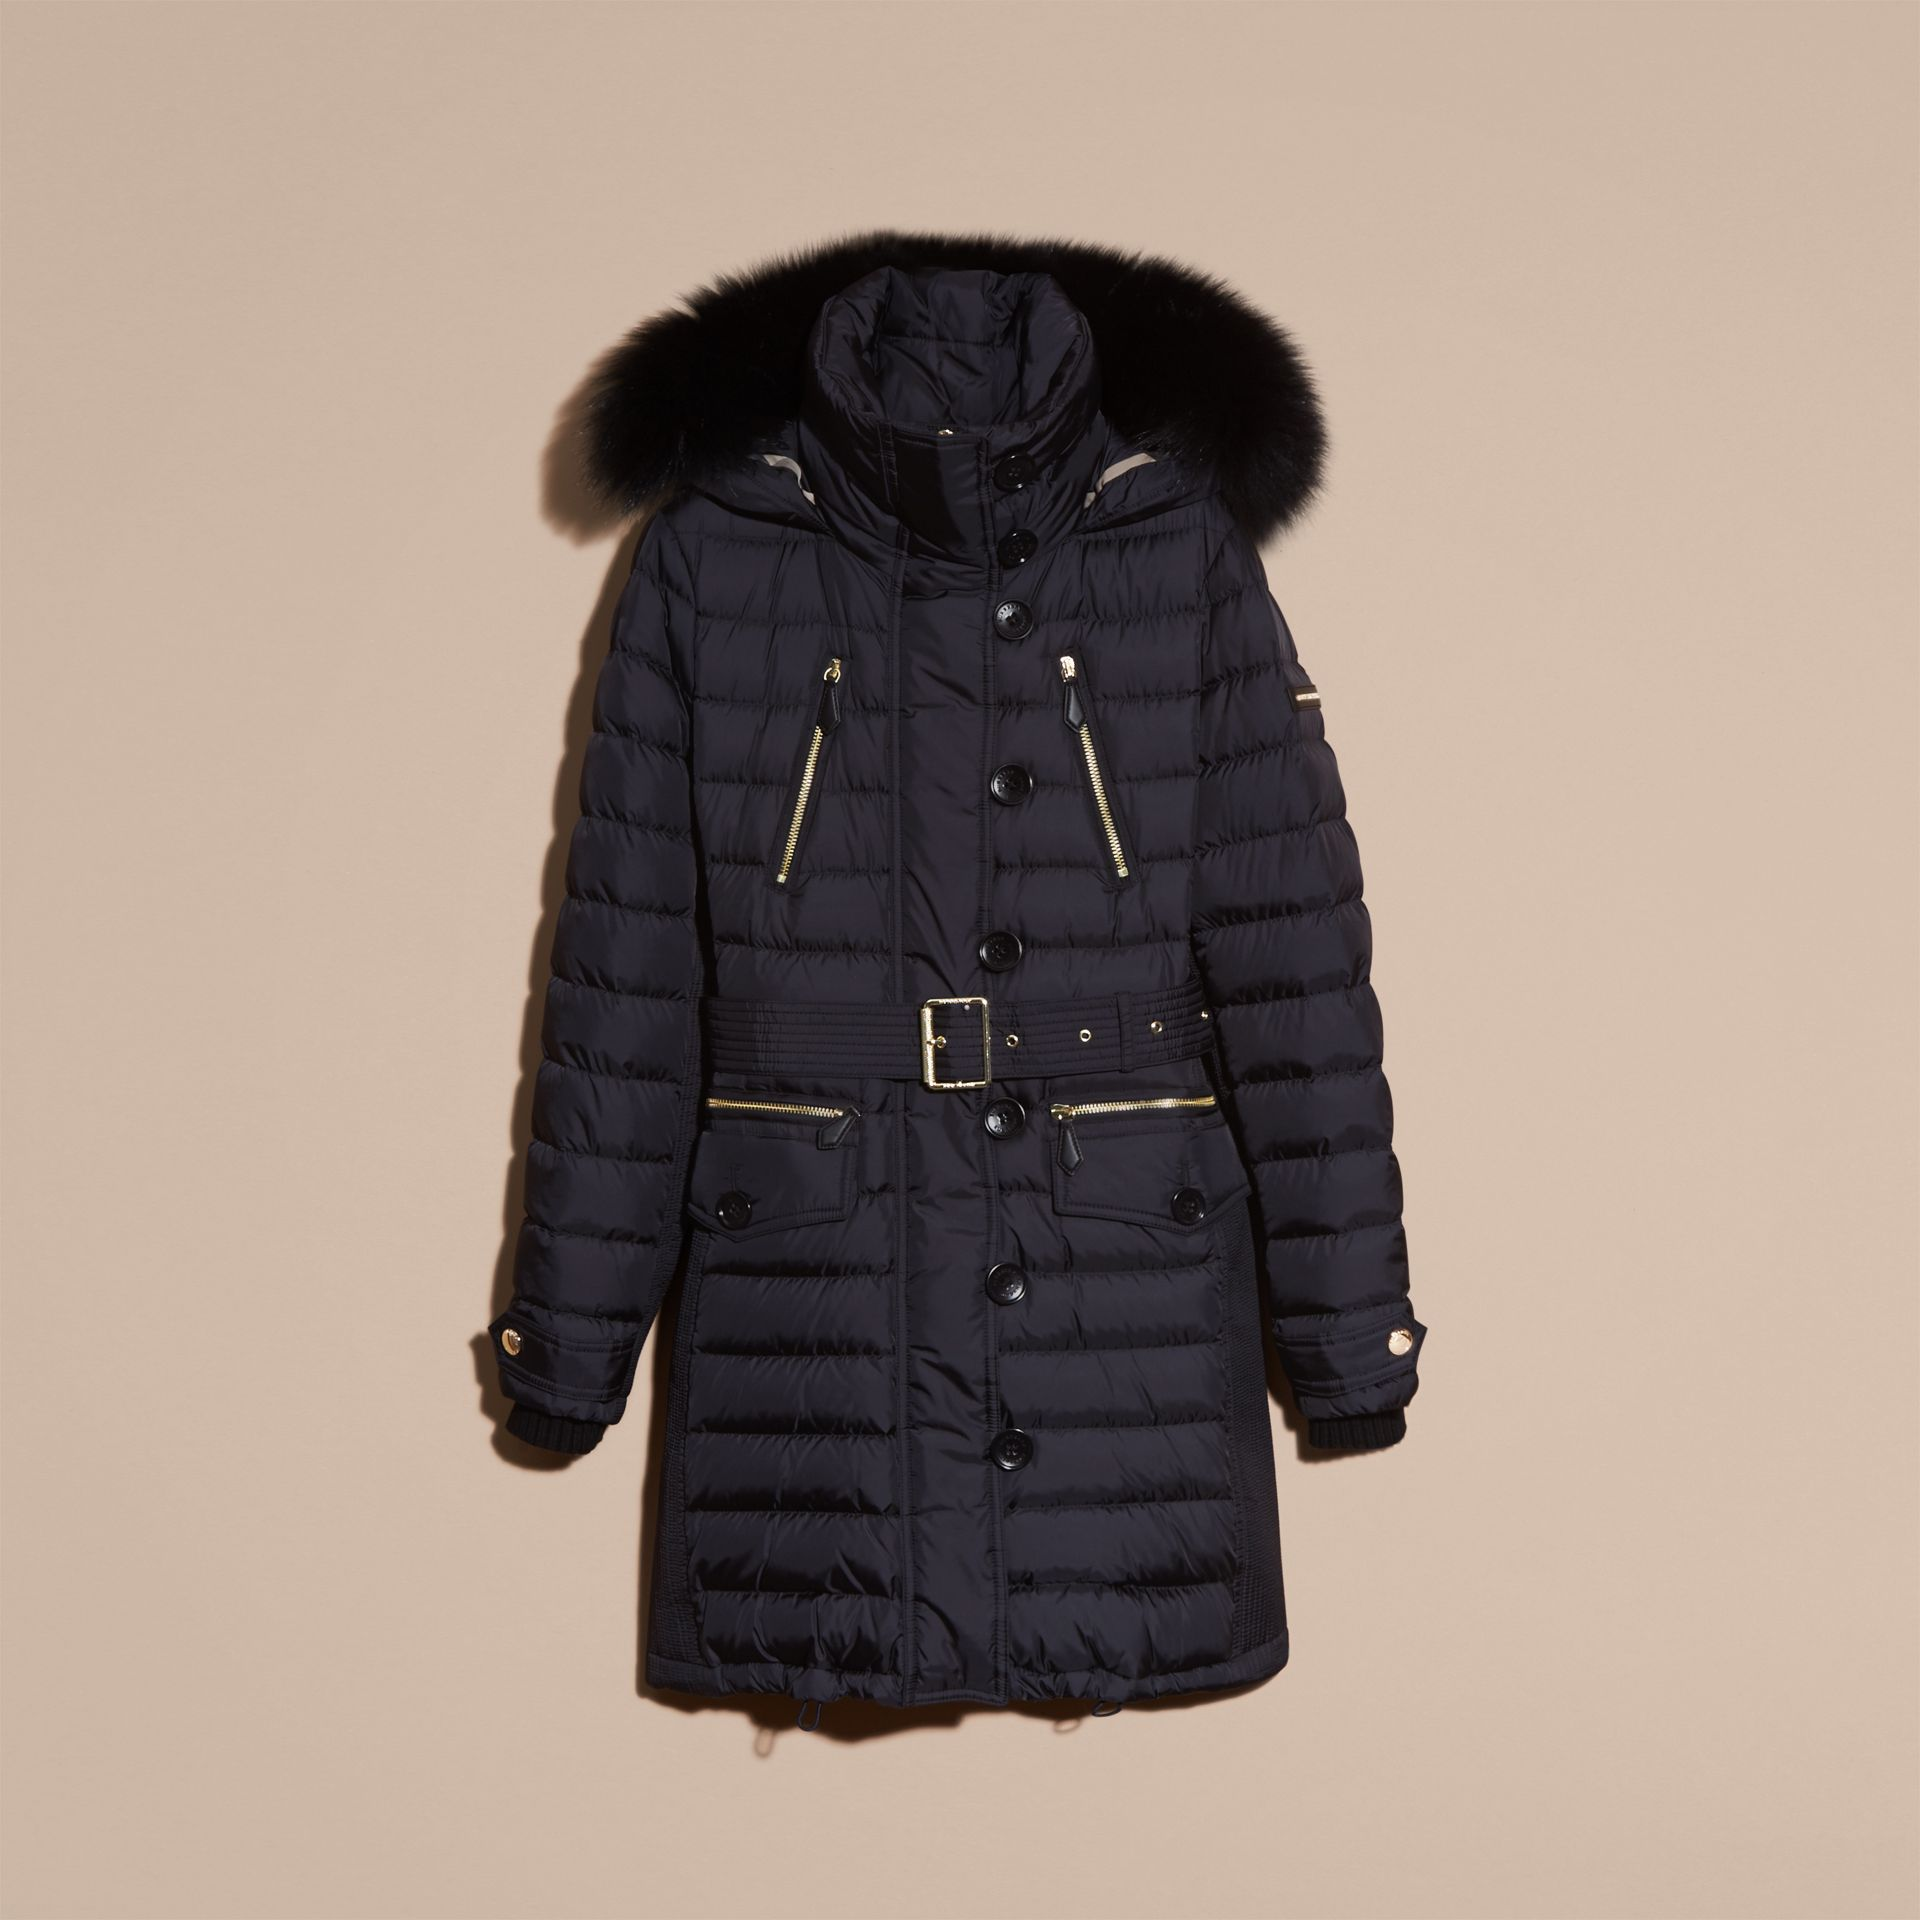 Navy Slim Fit Down-filled Parka with Fur Trim Navy - gallery image 4